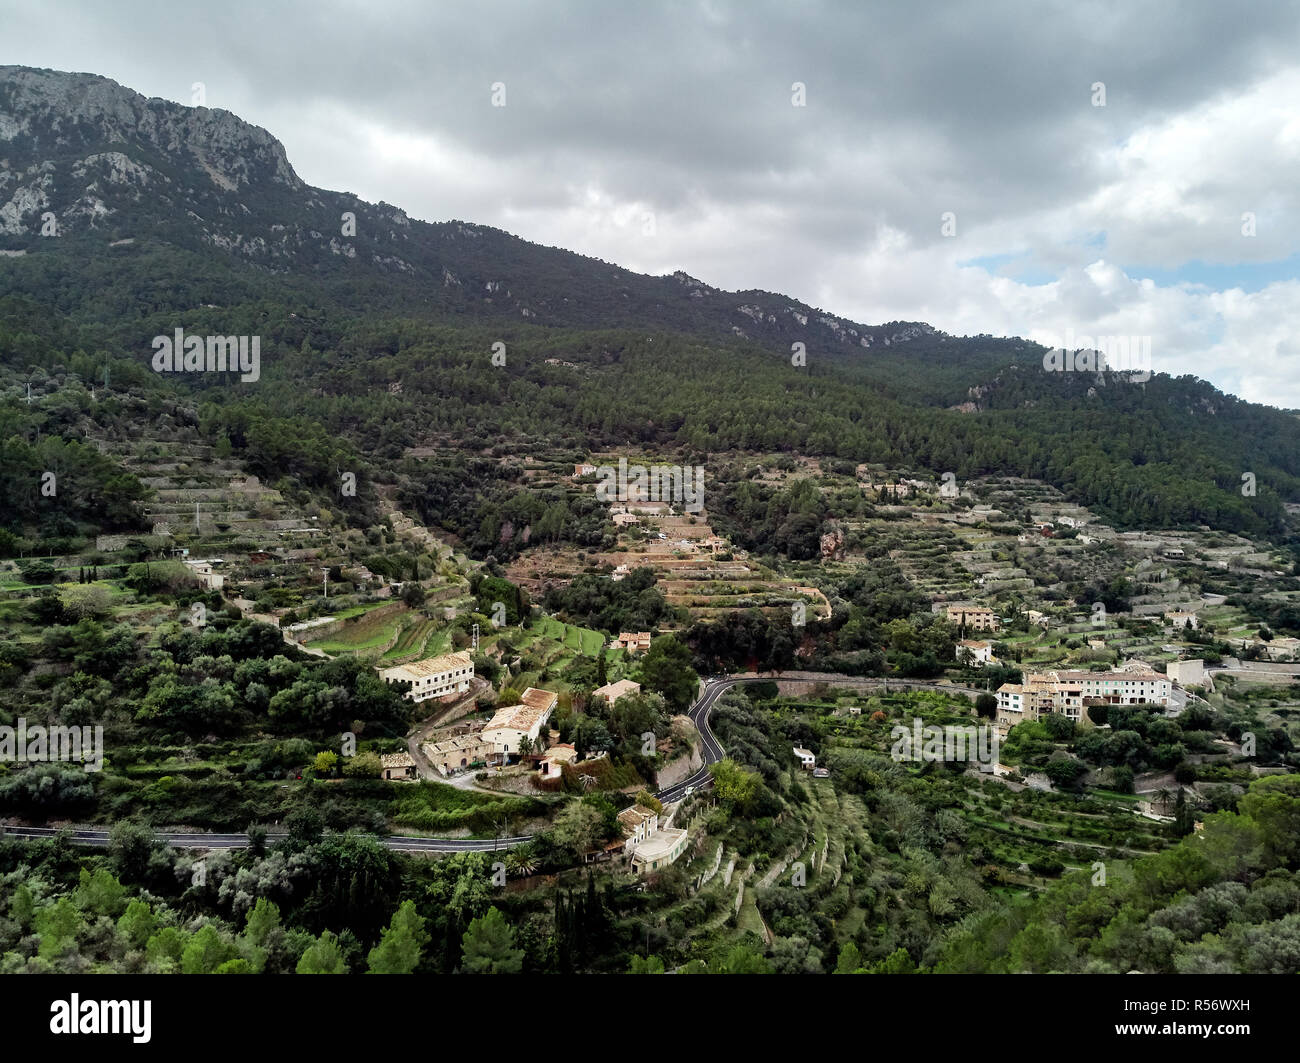 Aerial drone view of small hillside Banyalbufar town on west coast of Mallorca. Surrounded by Tramuntana mountain range Spain - Stock Image